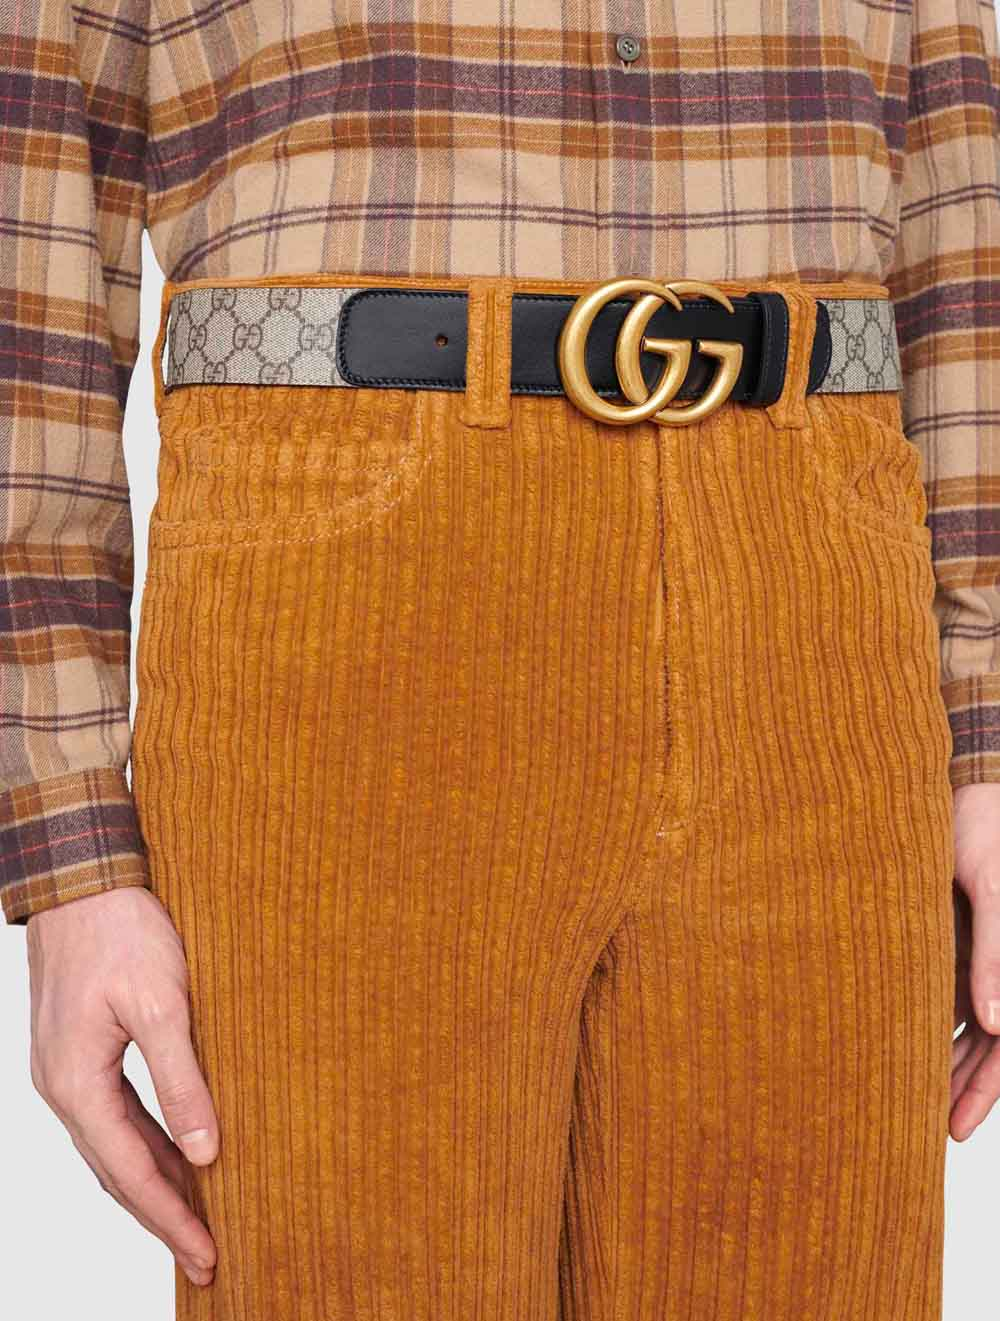 The-best-luxury-gifts-for-men-GG-belt-with-Double-G-buckle-monogram-for-men